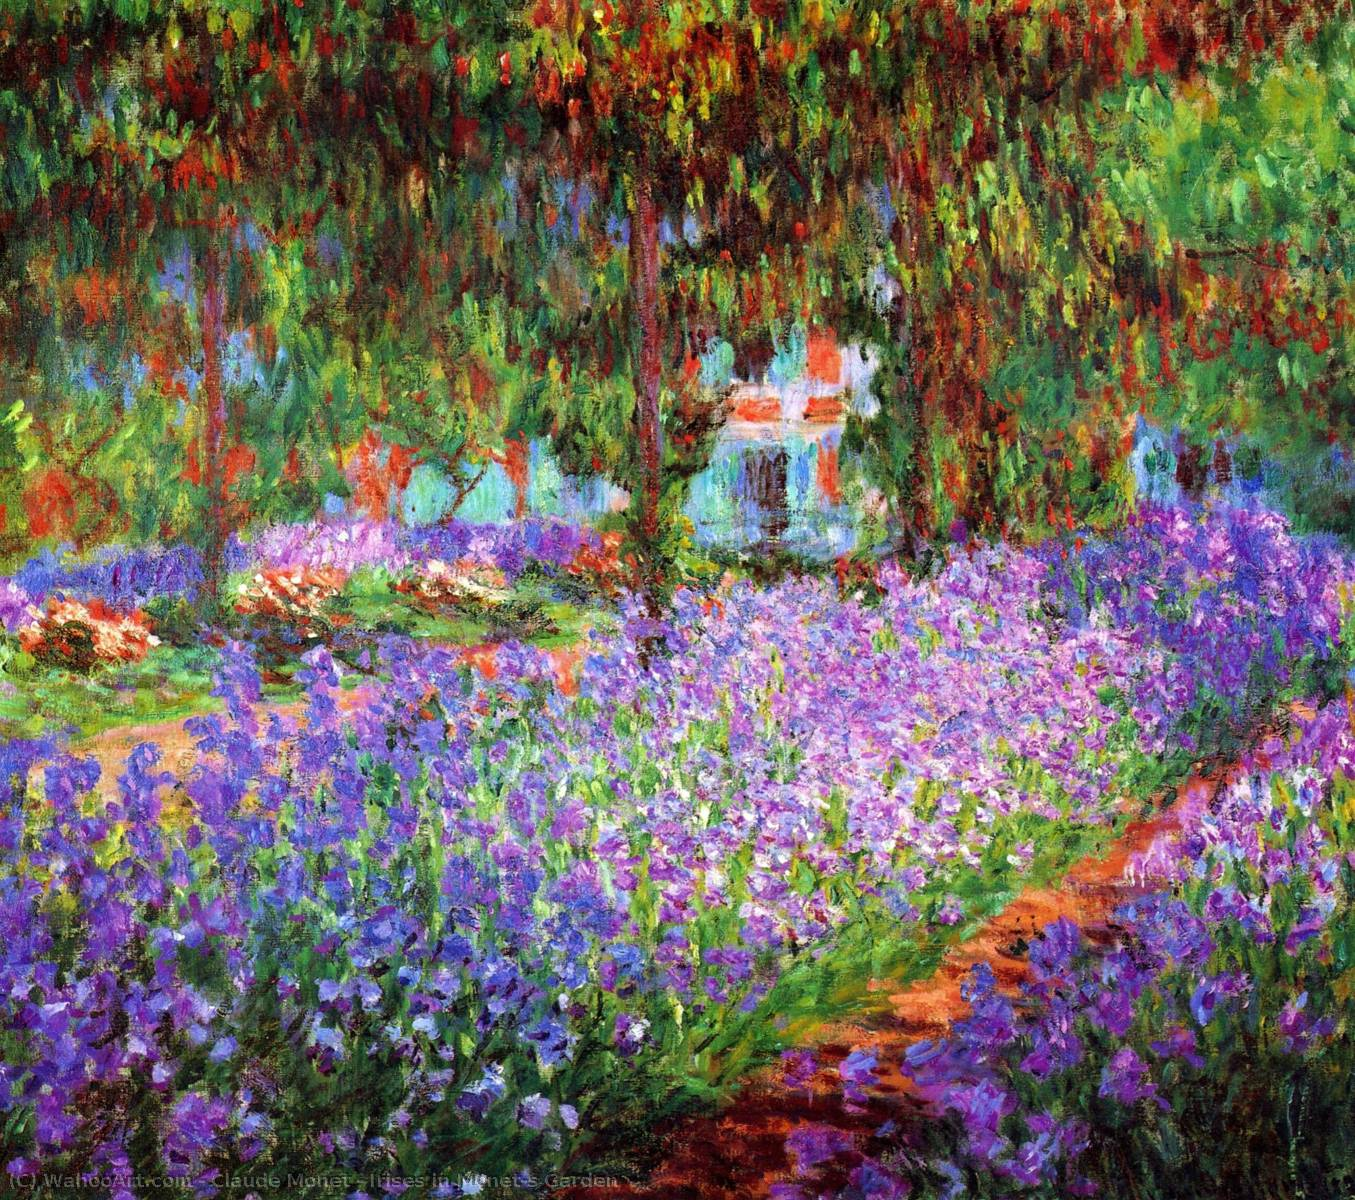 iris dans monet jardin, 1900 de Claude Monet (1840-1926, France) | Reproductions D'art Claude Monet | WahooArt.com